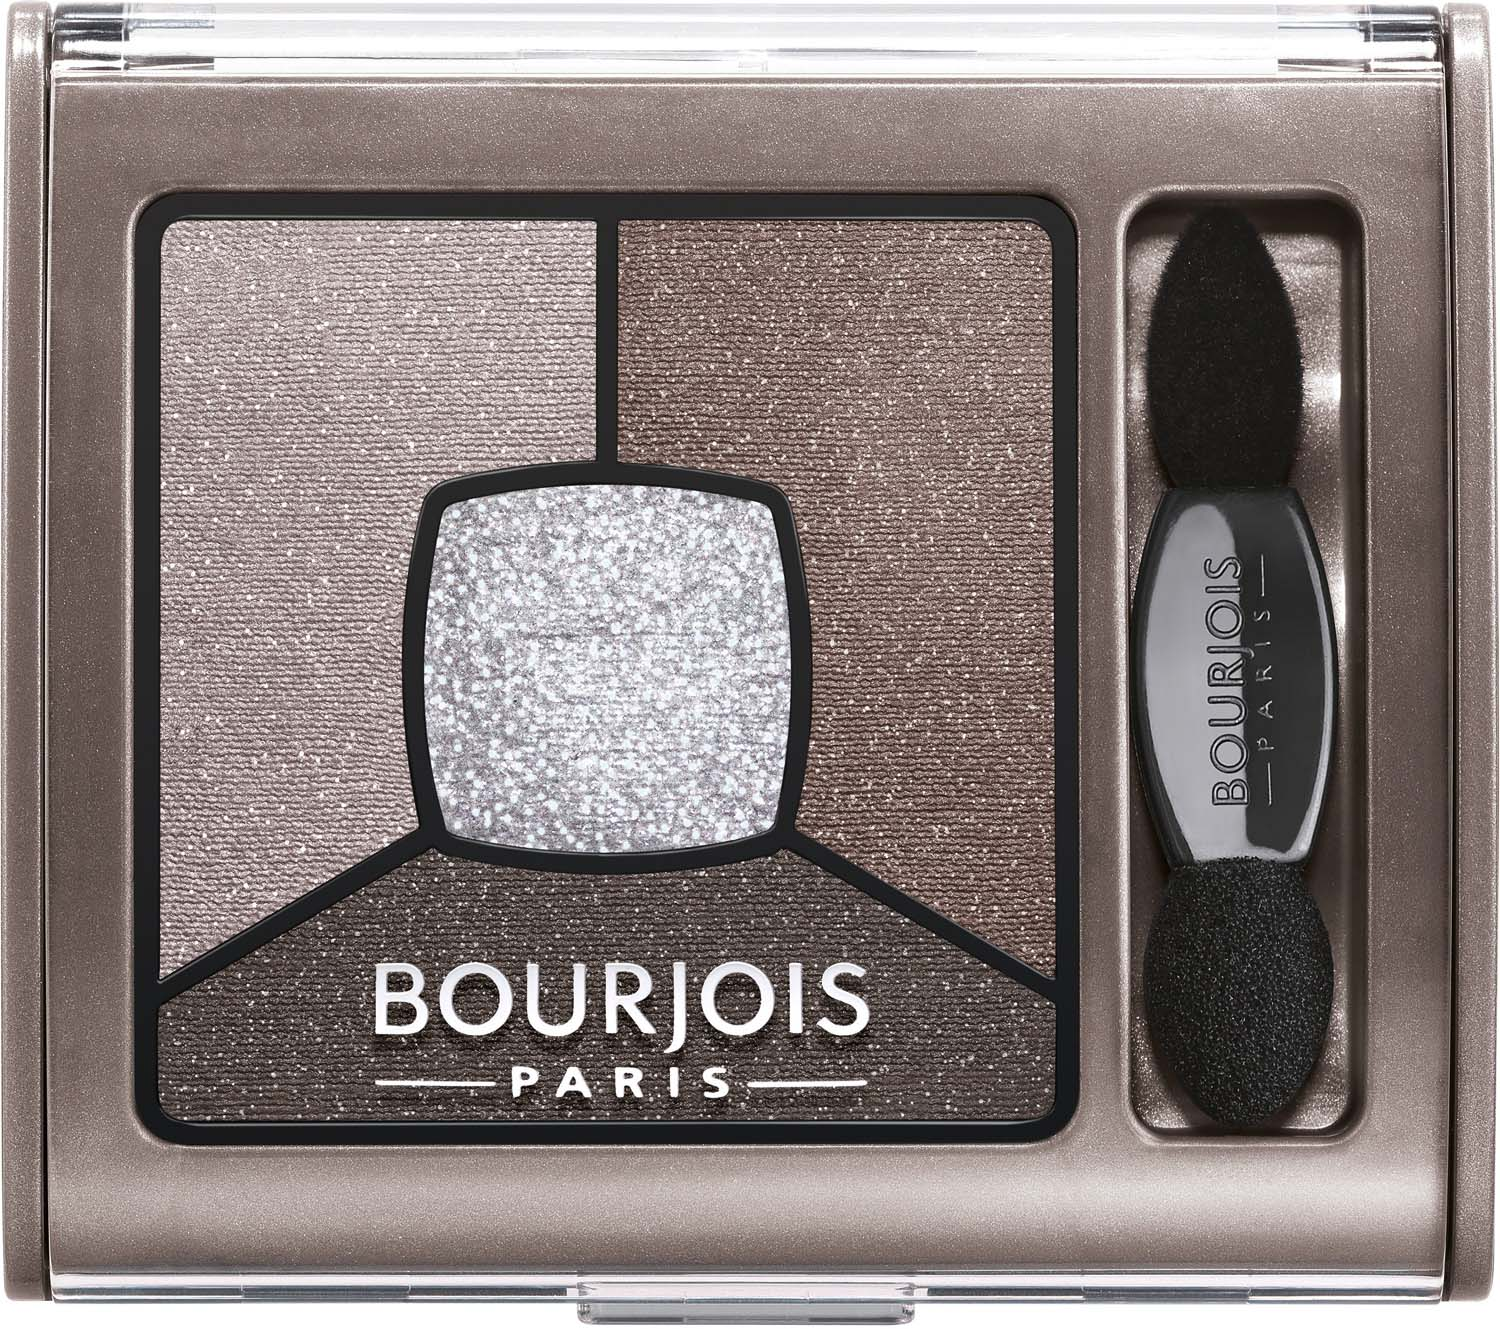 Bourjois Палитра теней для век Smoky Stories Тон 05 good nude 3 мл zhiyusun new 10 4 inch touch screen 4 wire resistive usb touch panel overlay kit free shipping 225 173